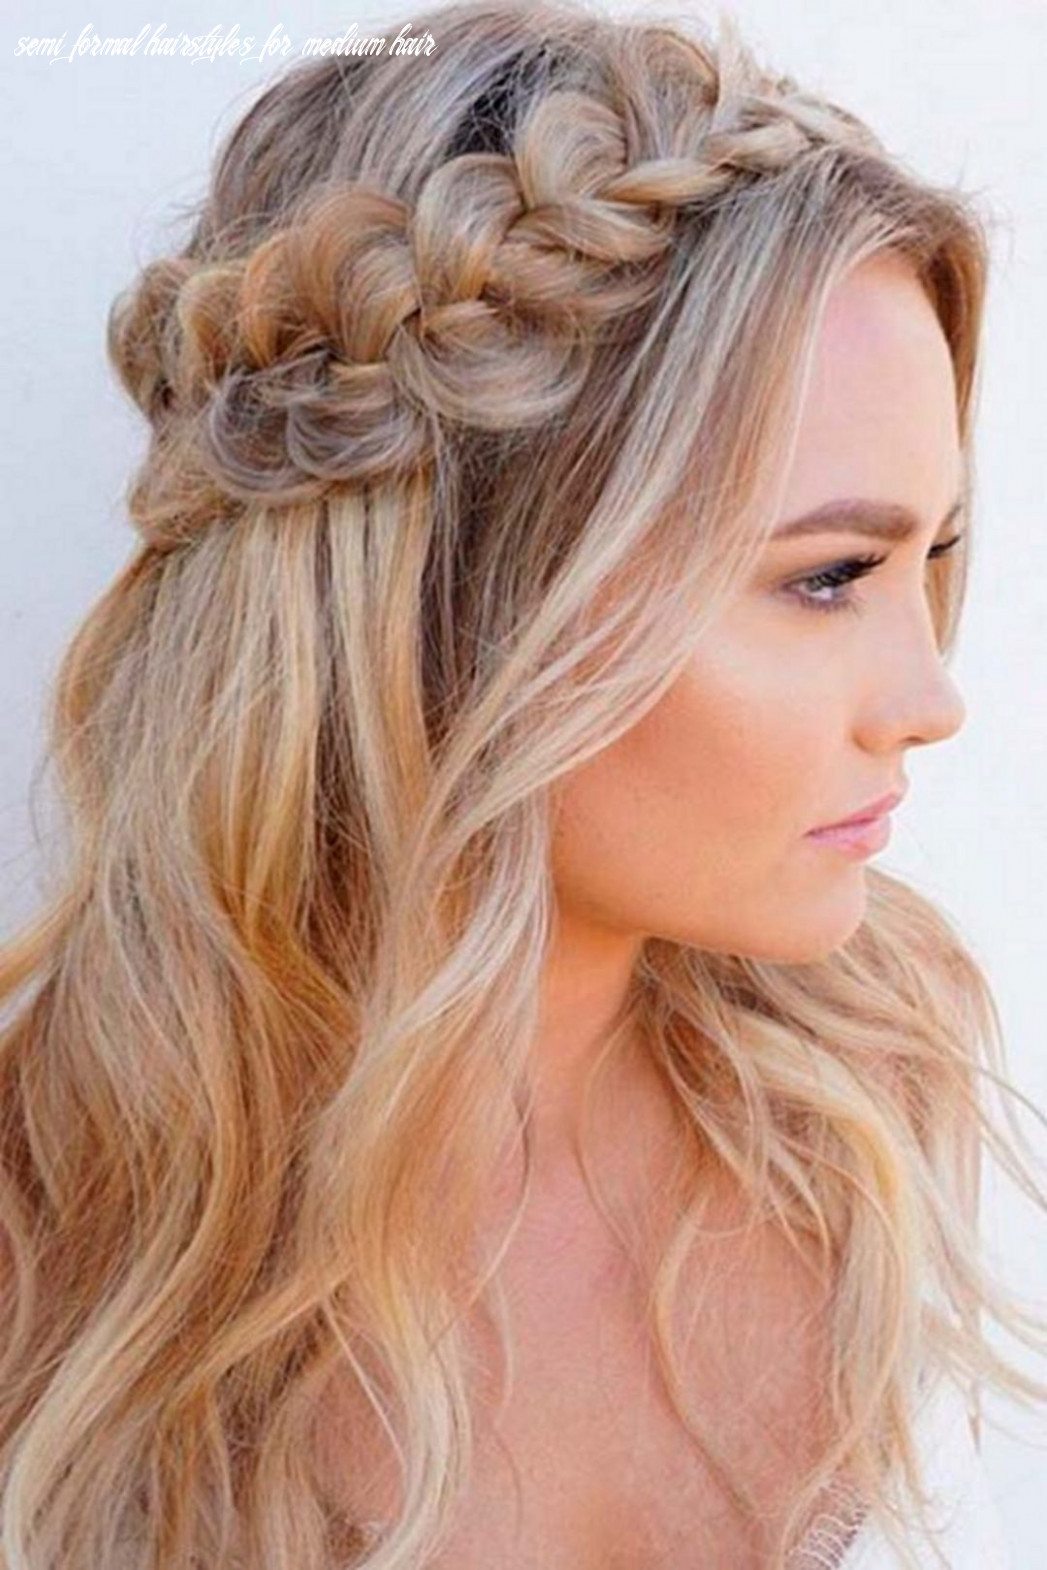 10 beautiful semi formal women hairstyle ideas for party | medium